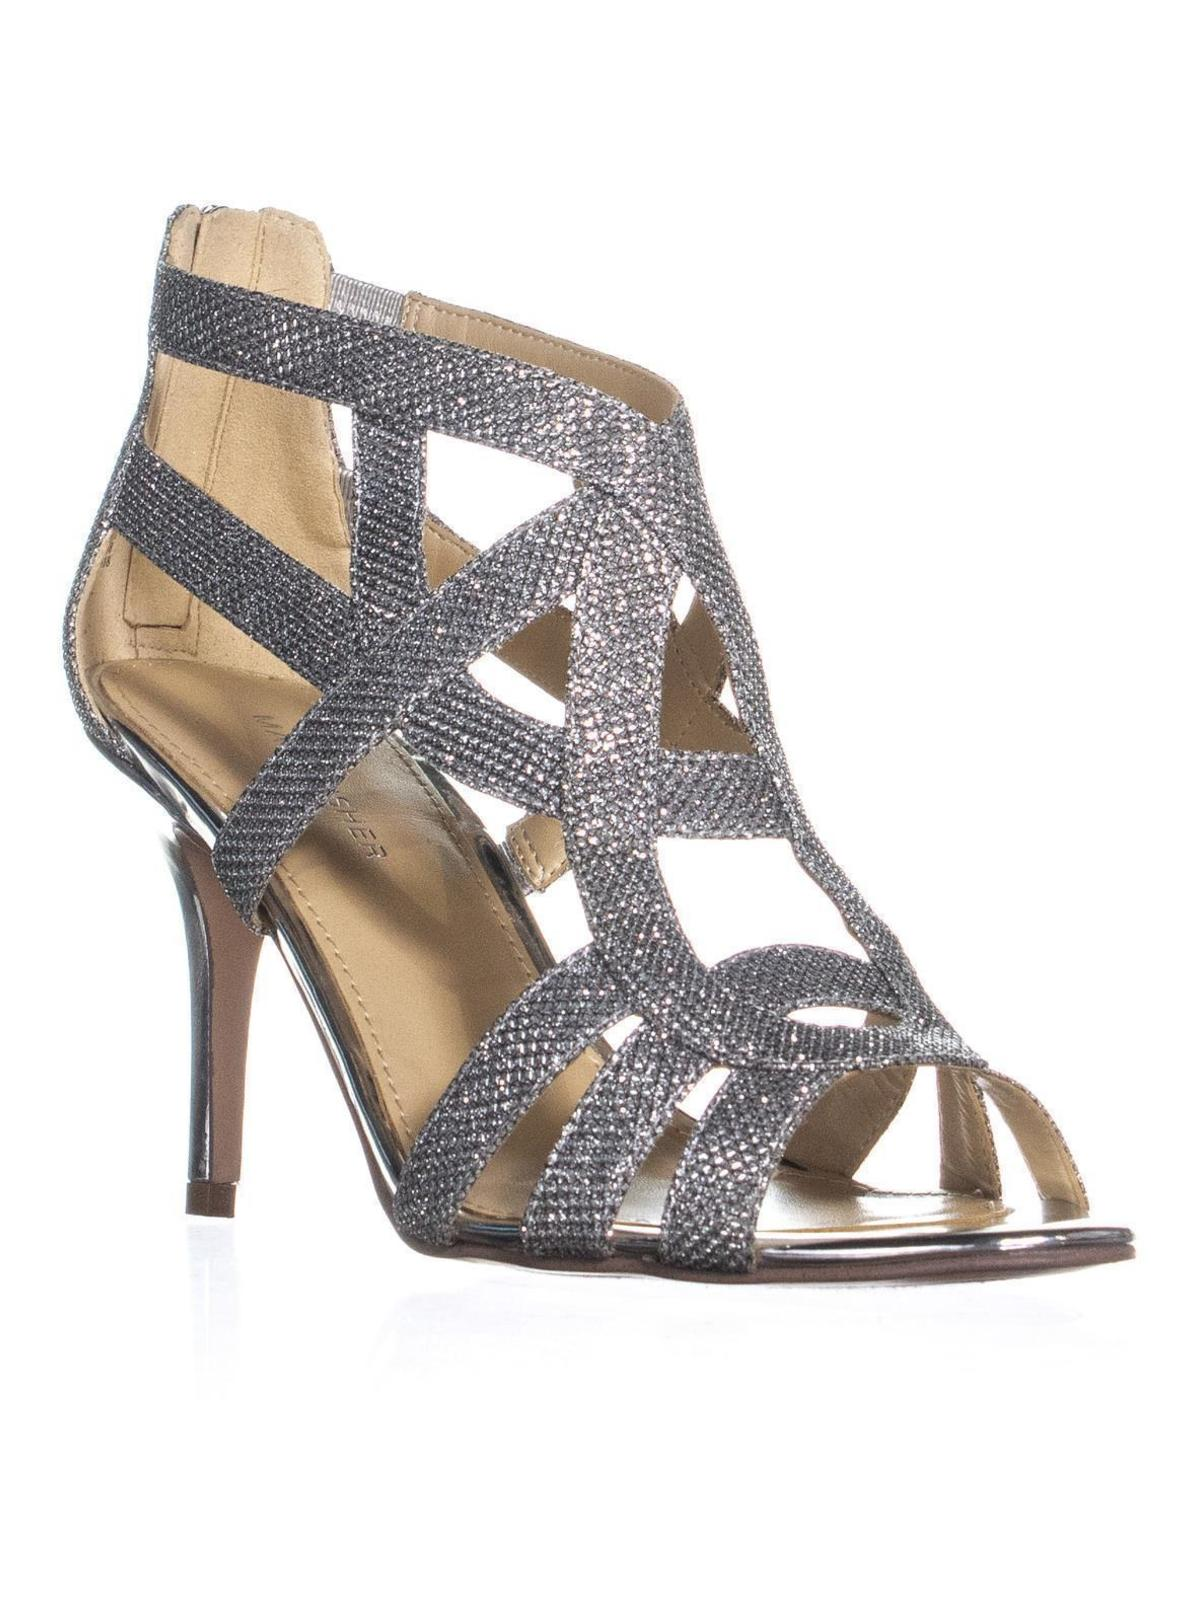 c72040accb Marc Fisher Nala3 Strappy Dress Sandals, Silver